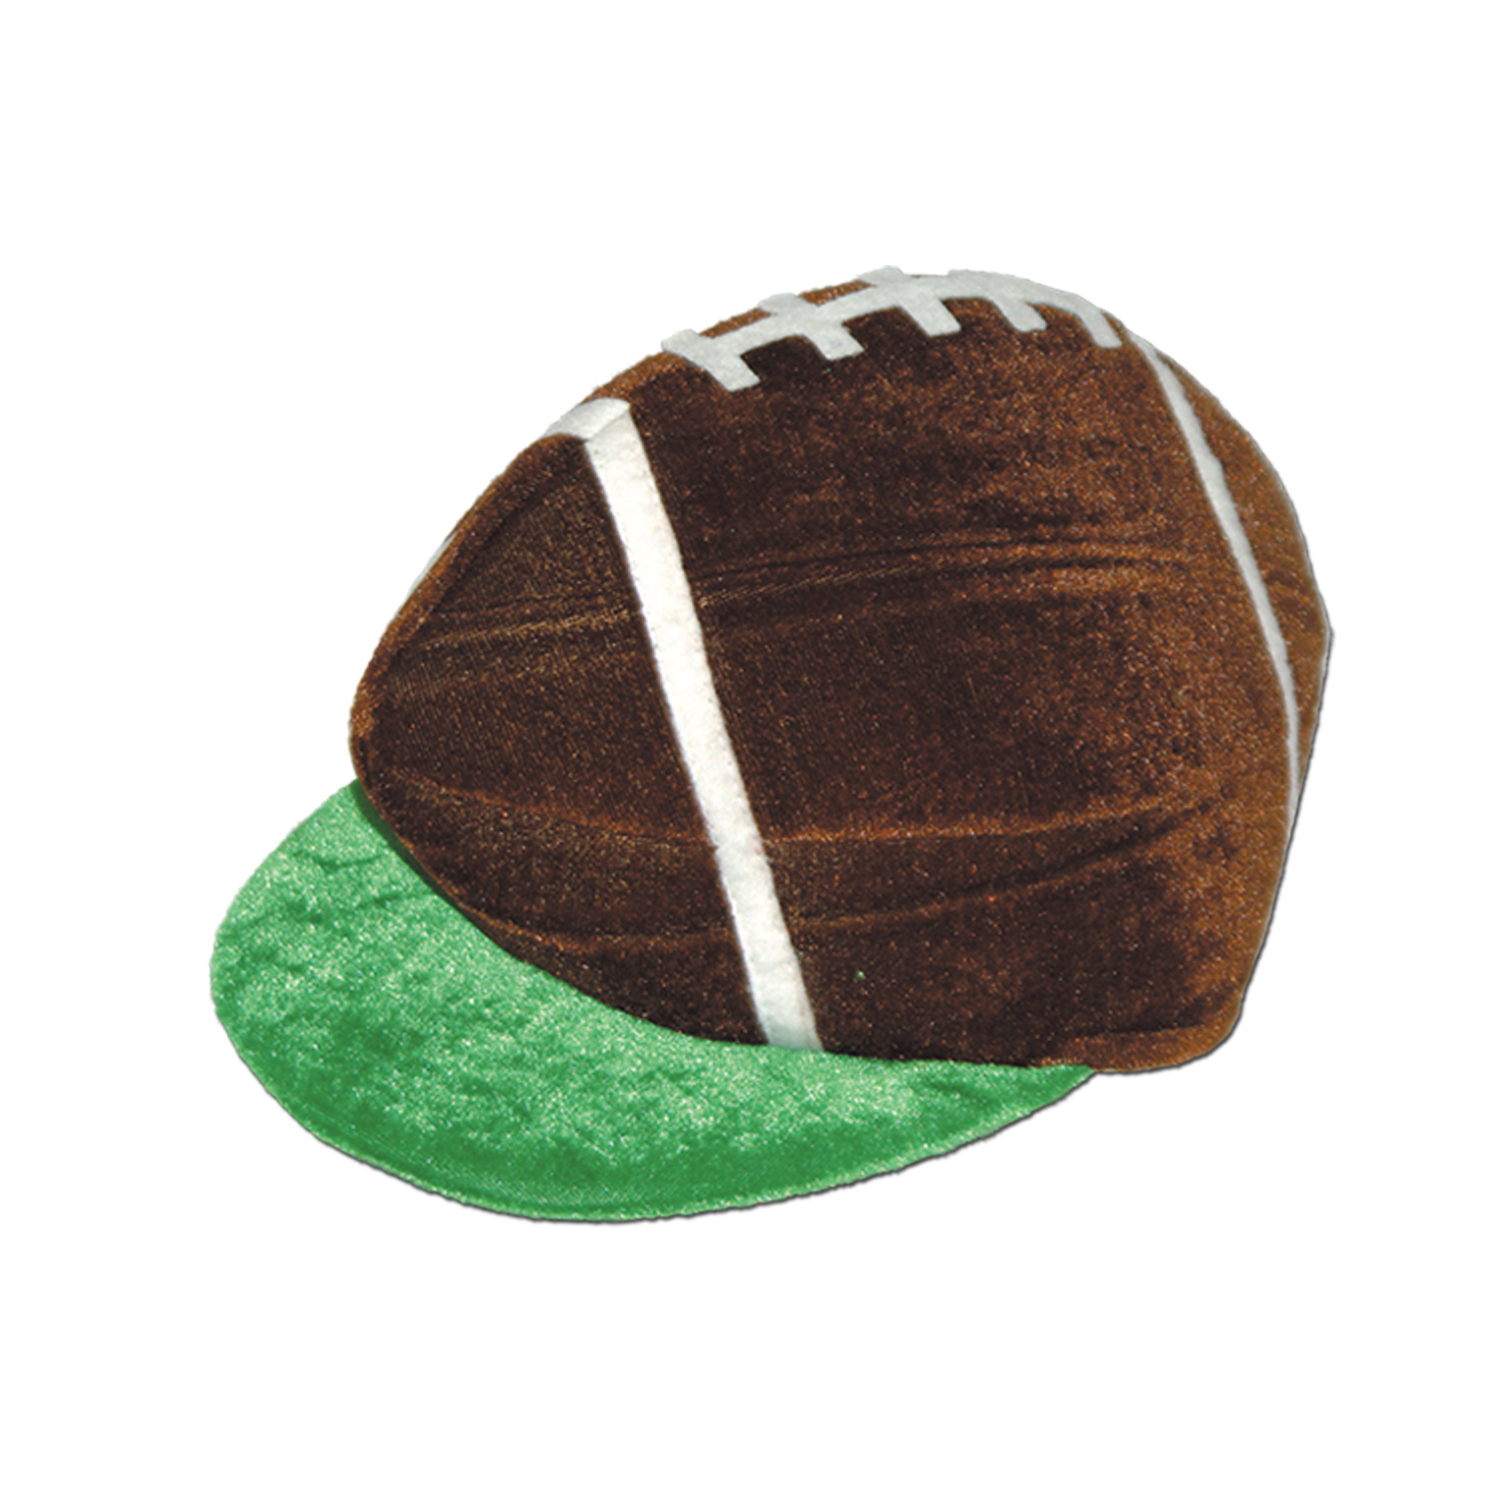 Plush Football Hat (Pack of 12) Plush Football Hat, wearable, party favor, football, wholesale, inexpensive, bulk